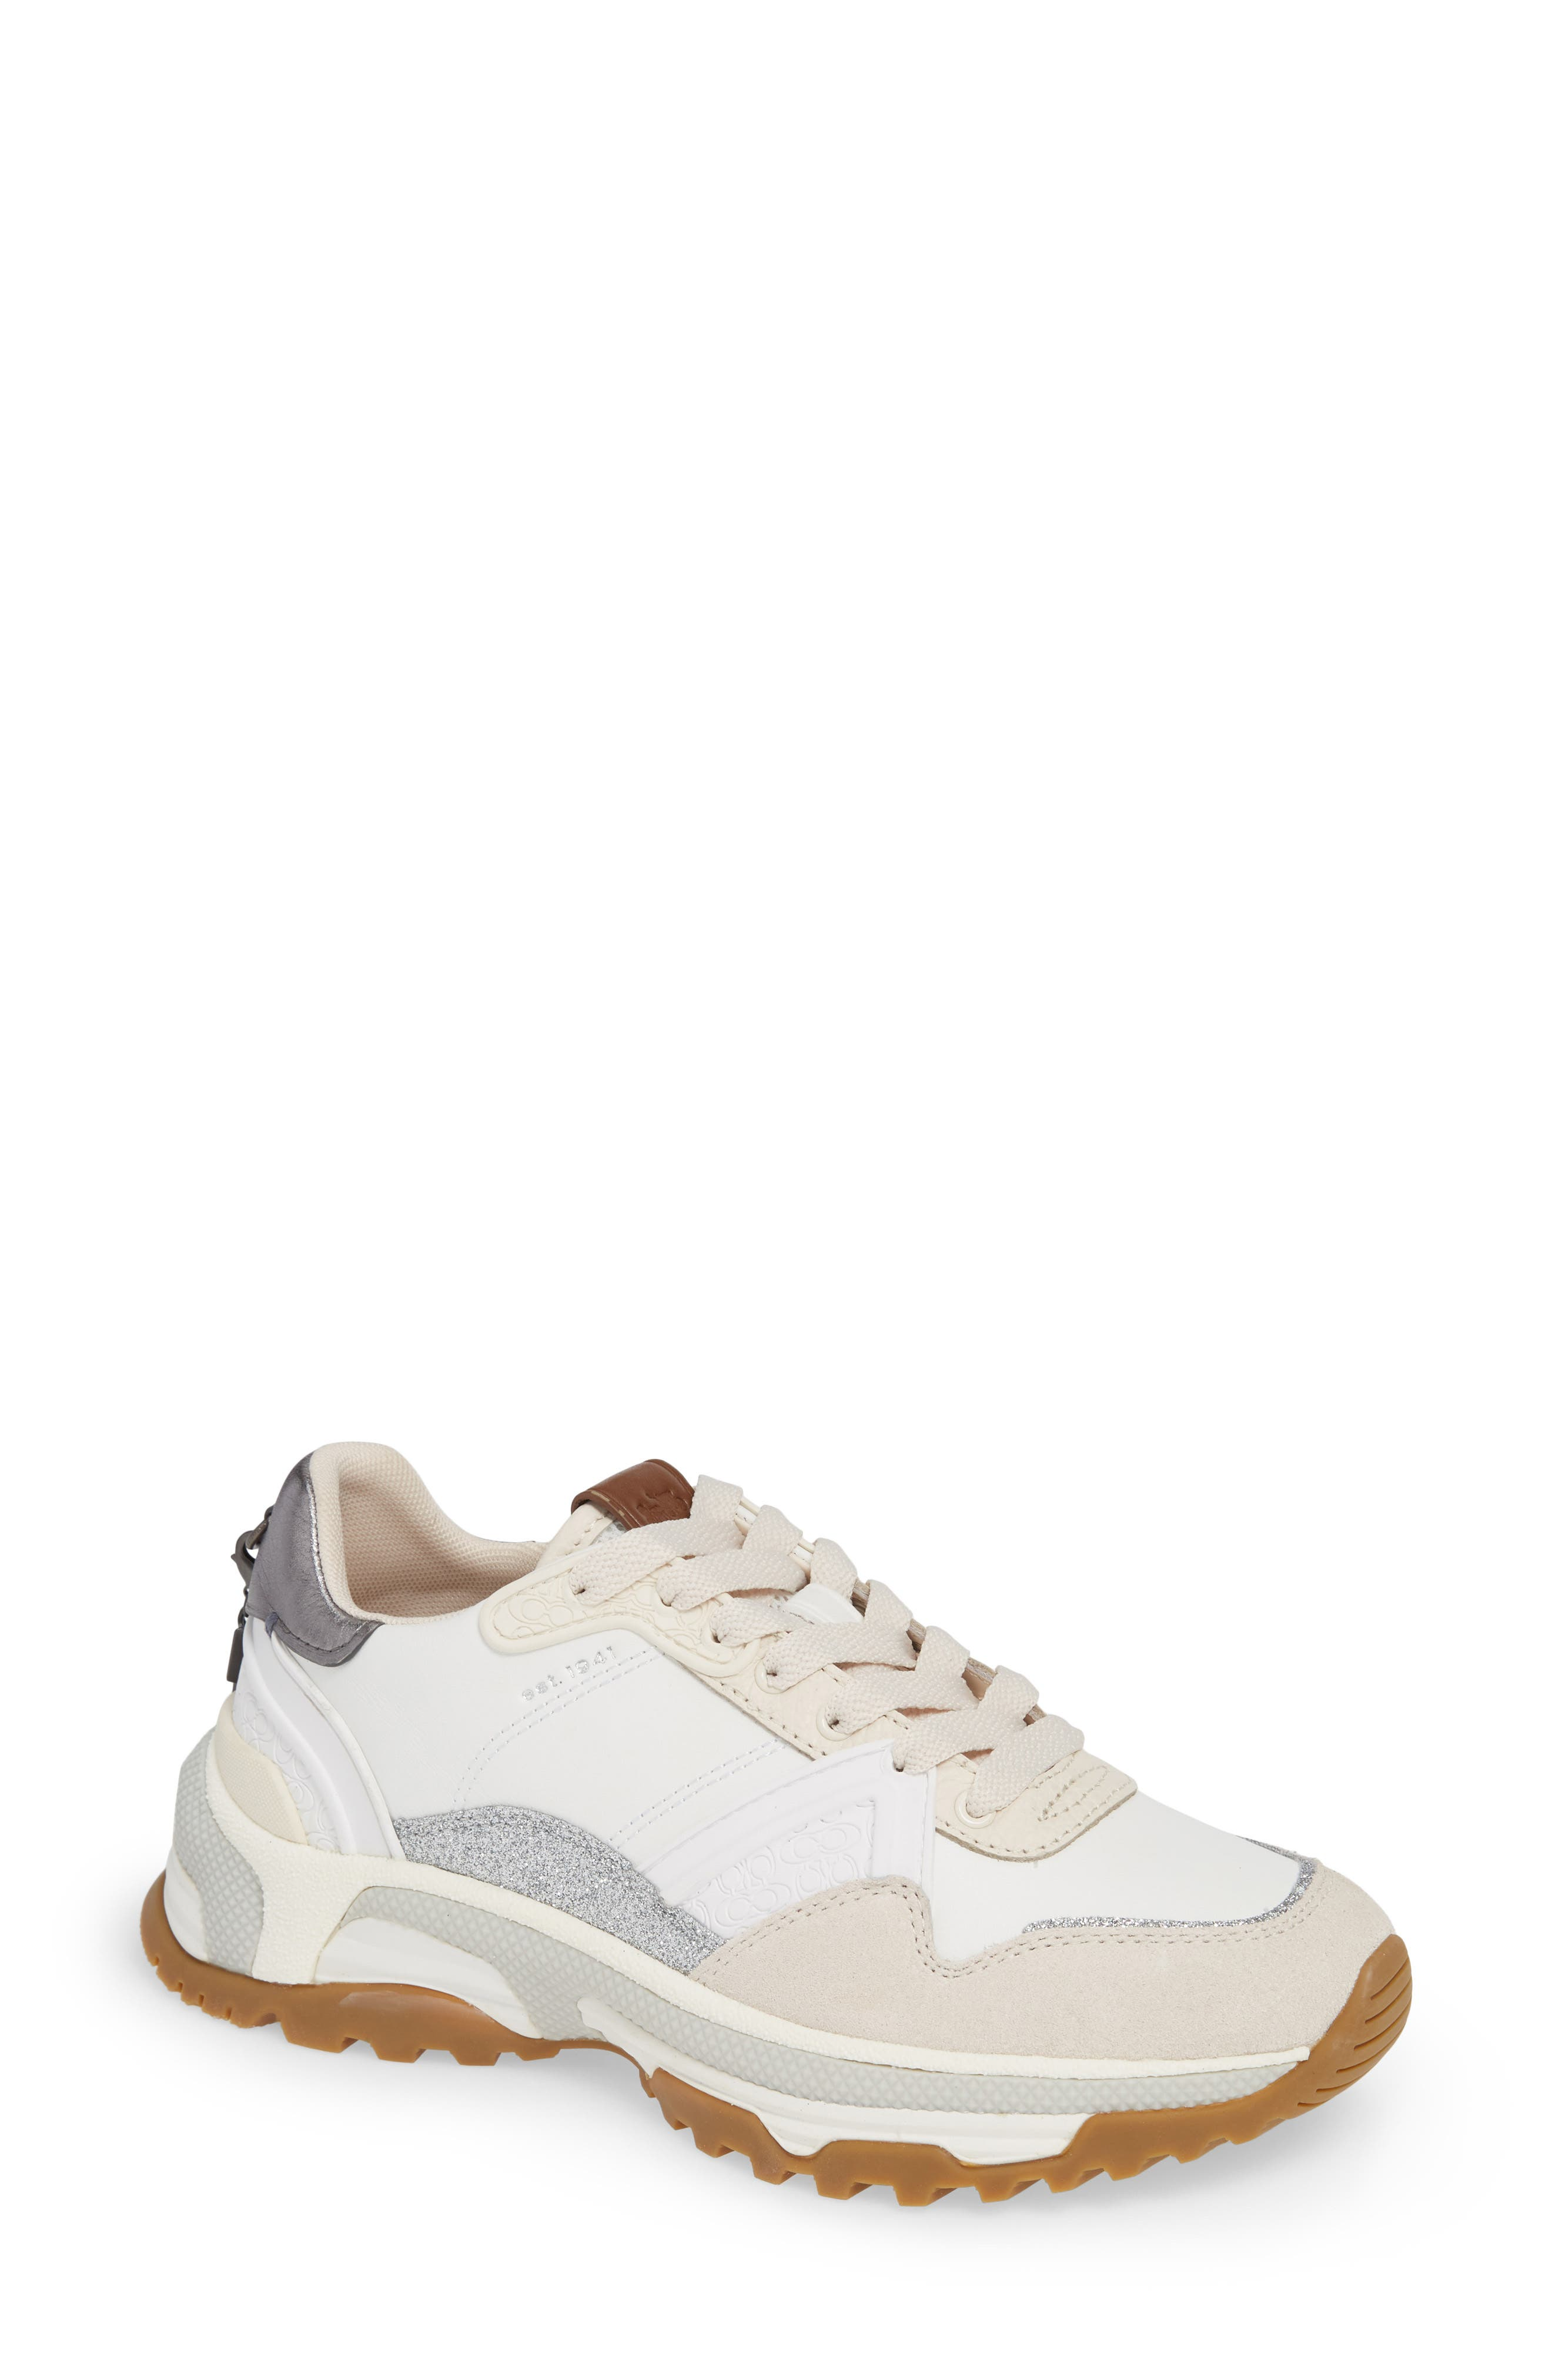 GLT Sneaker,                             Main thumbnail 1, color,                             WHITE LEATHER/ SUEDE